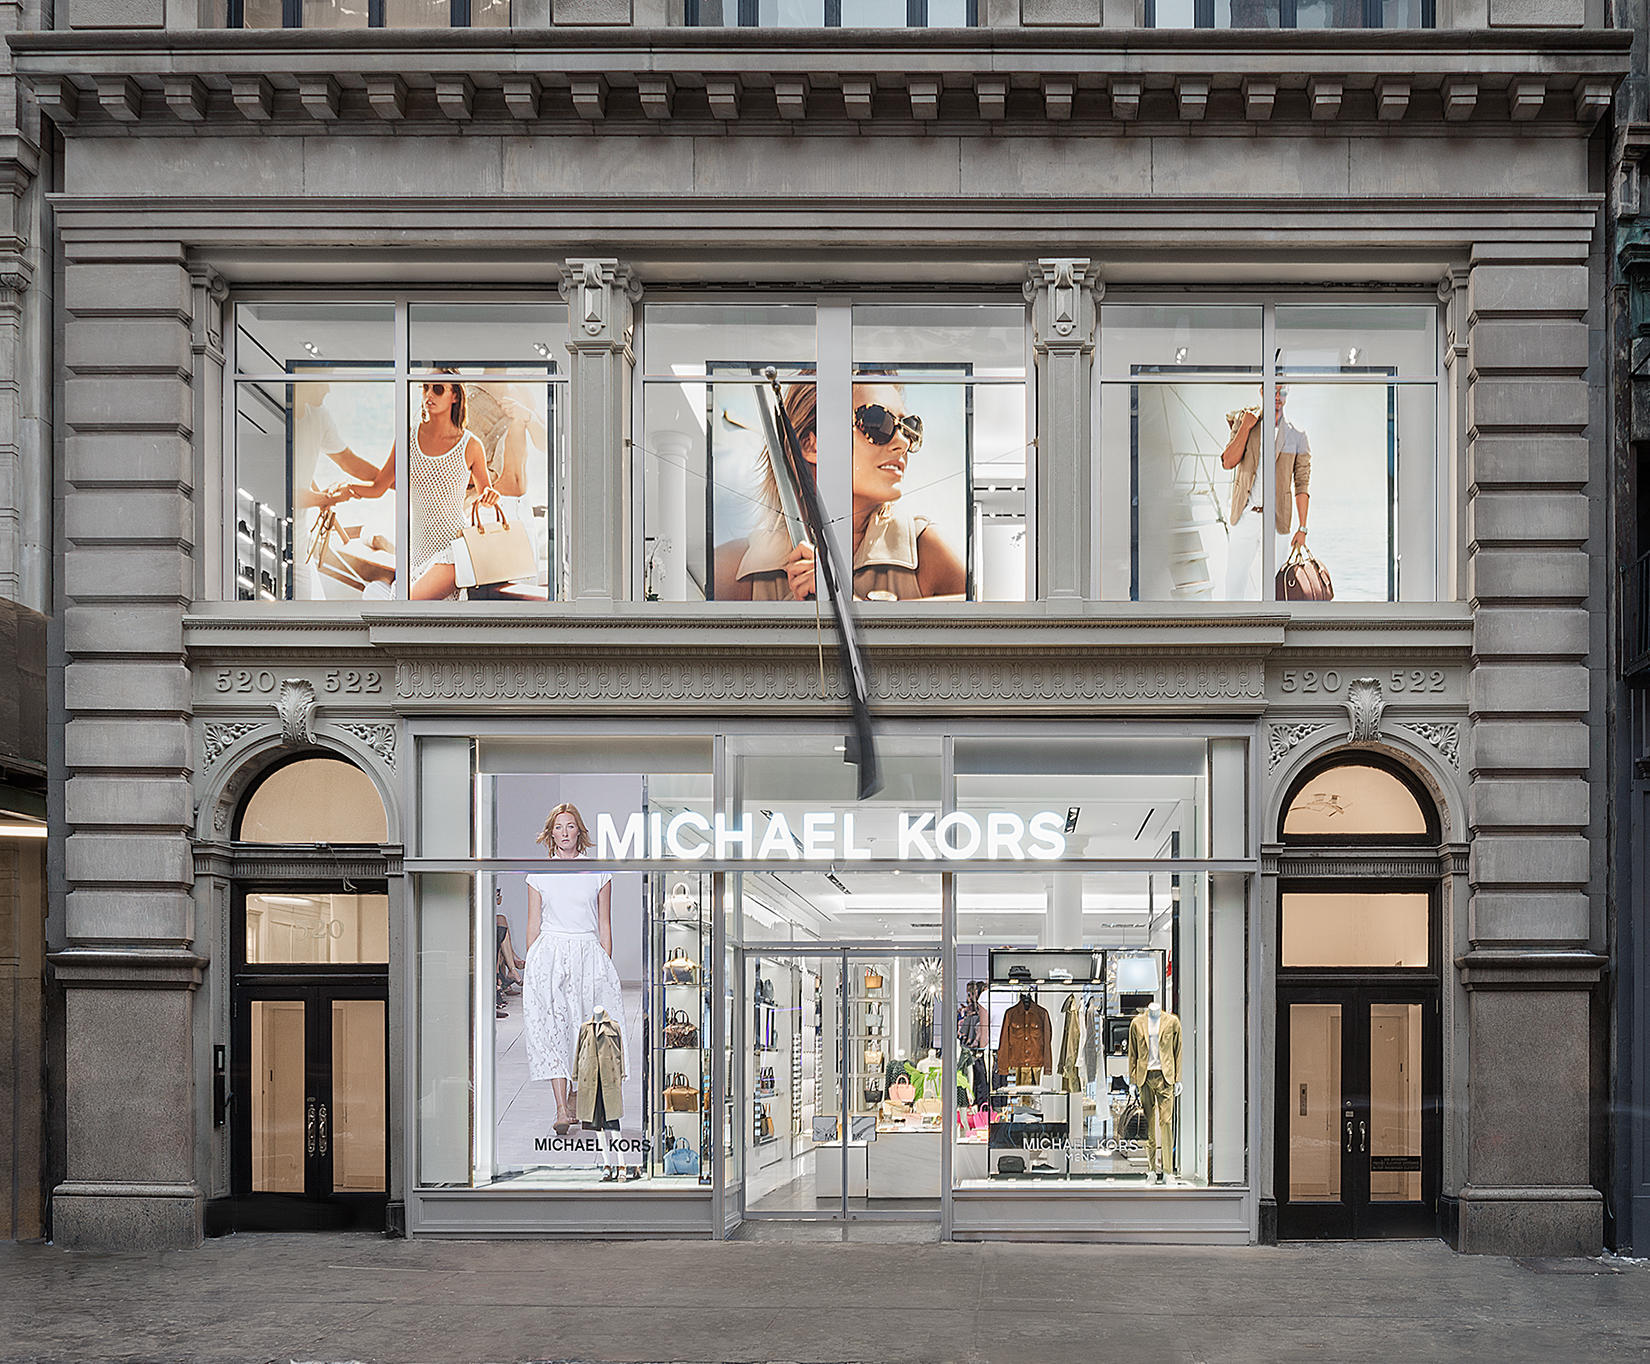 About Michael Kors Outlet York